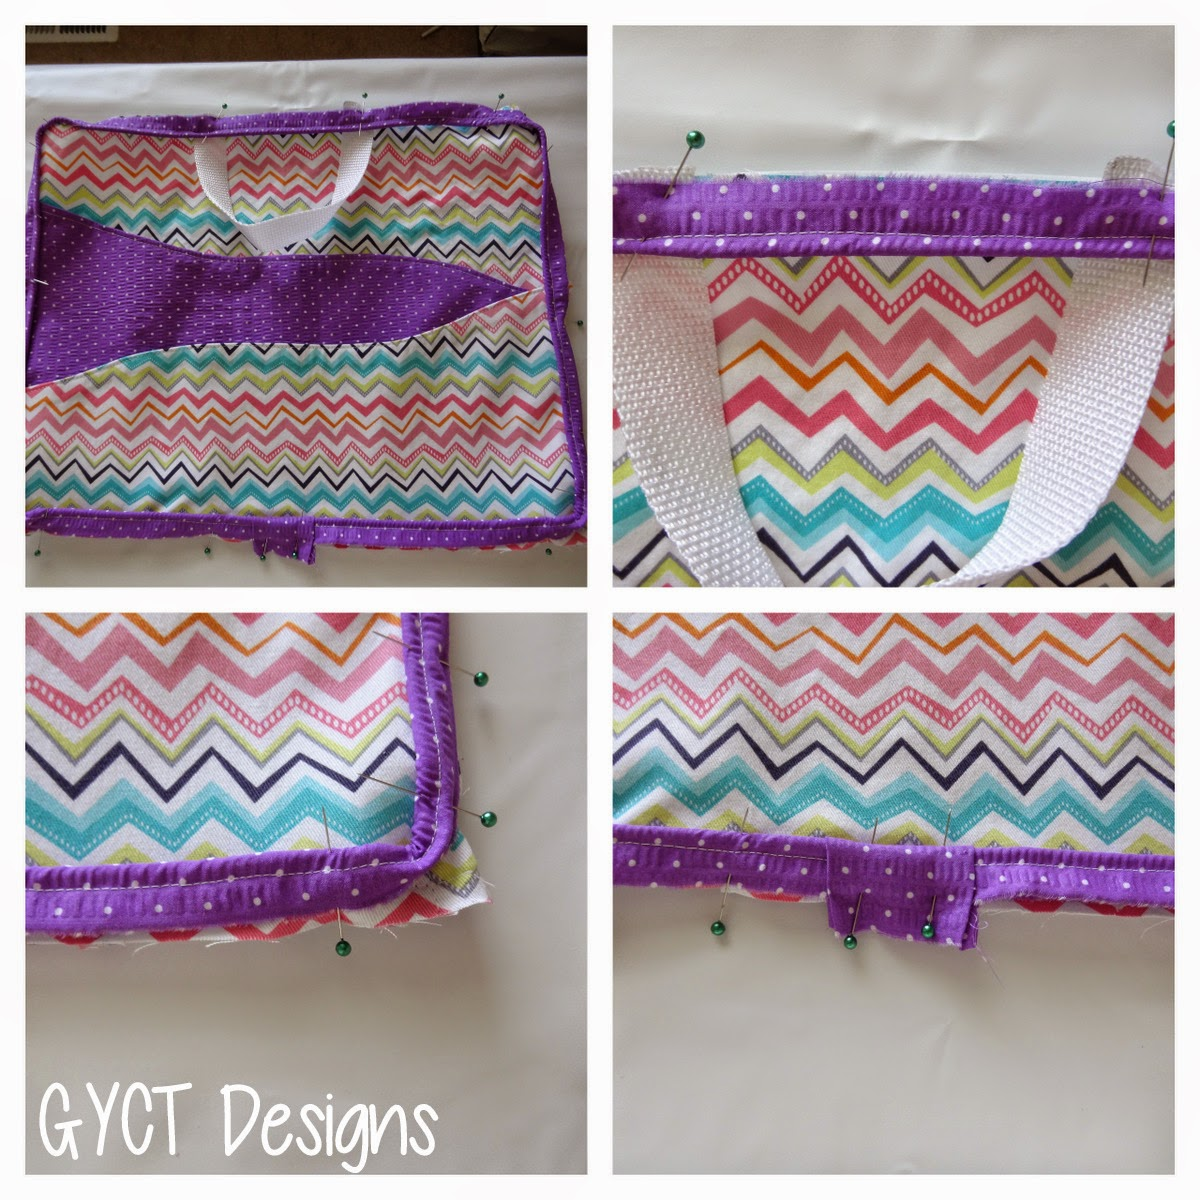 To Grandma's House Bag Pattern & Tutorial by GYCT Designs